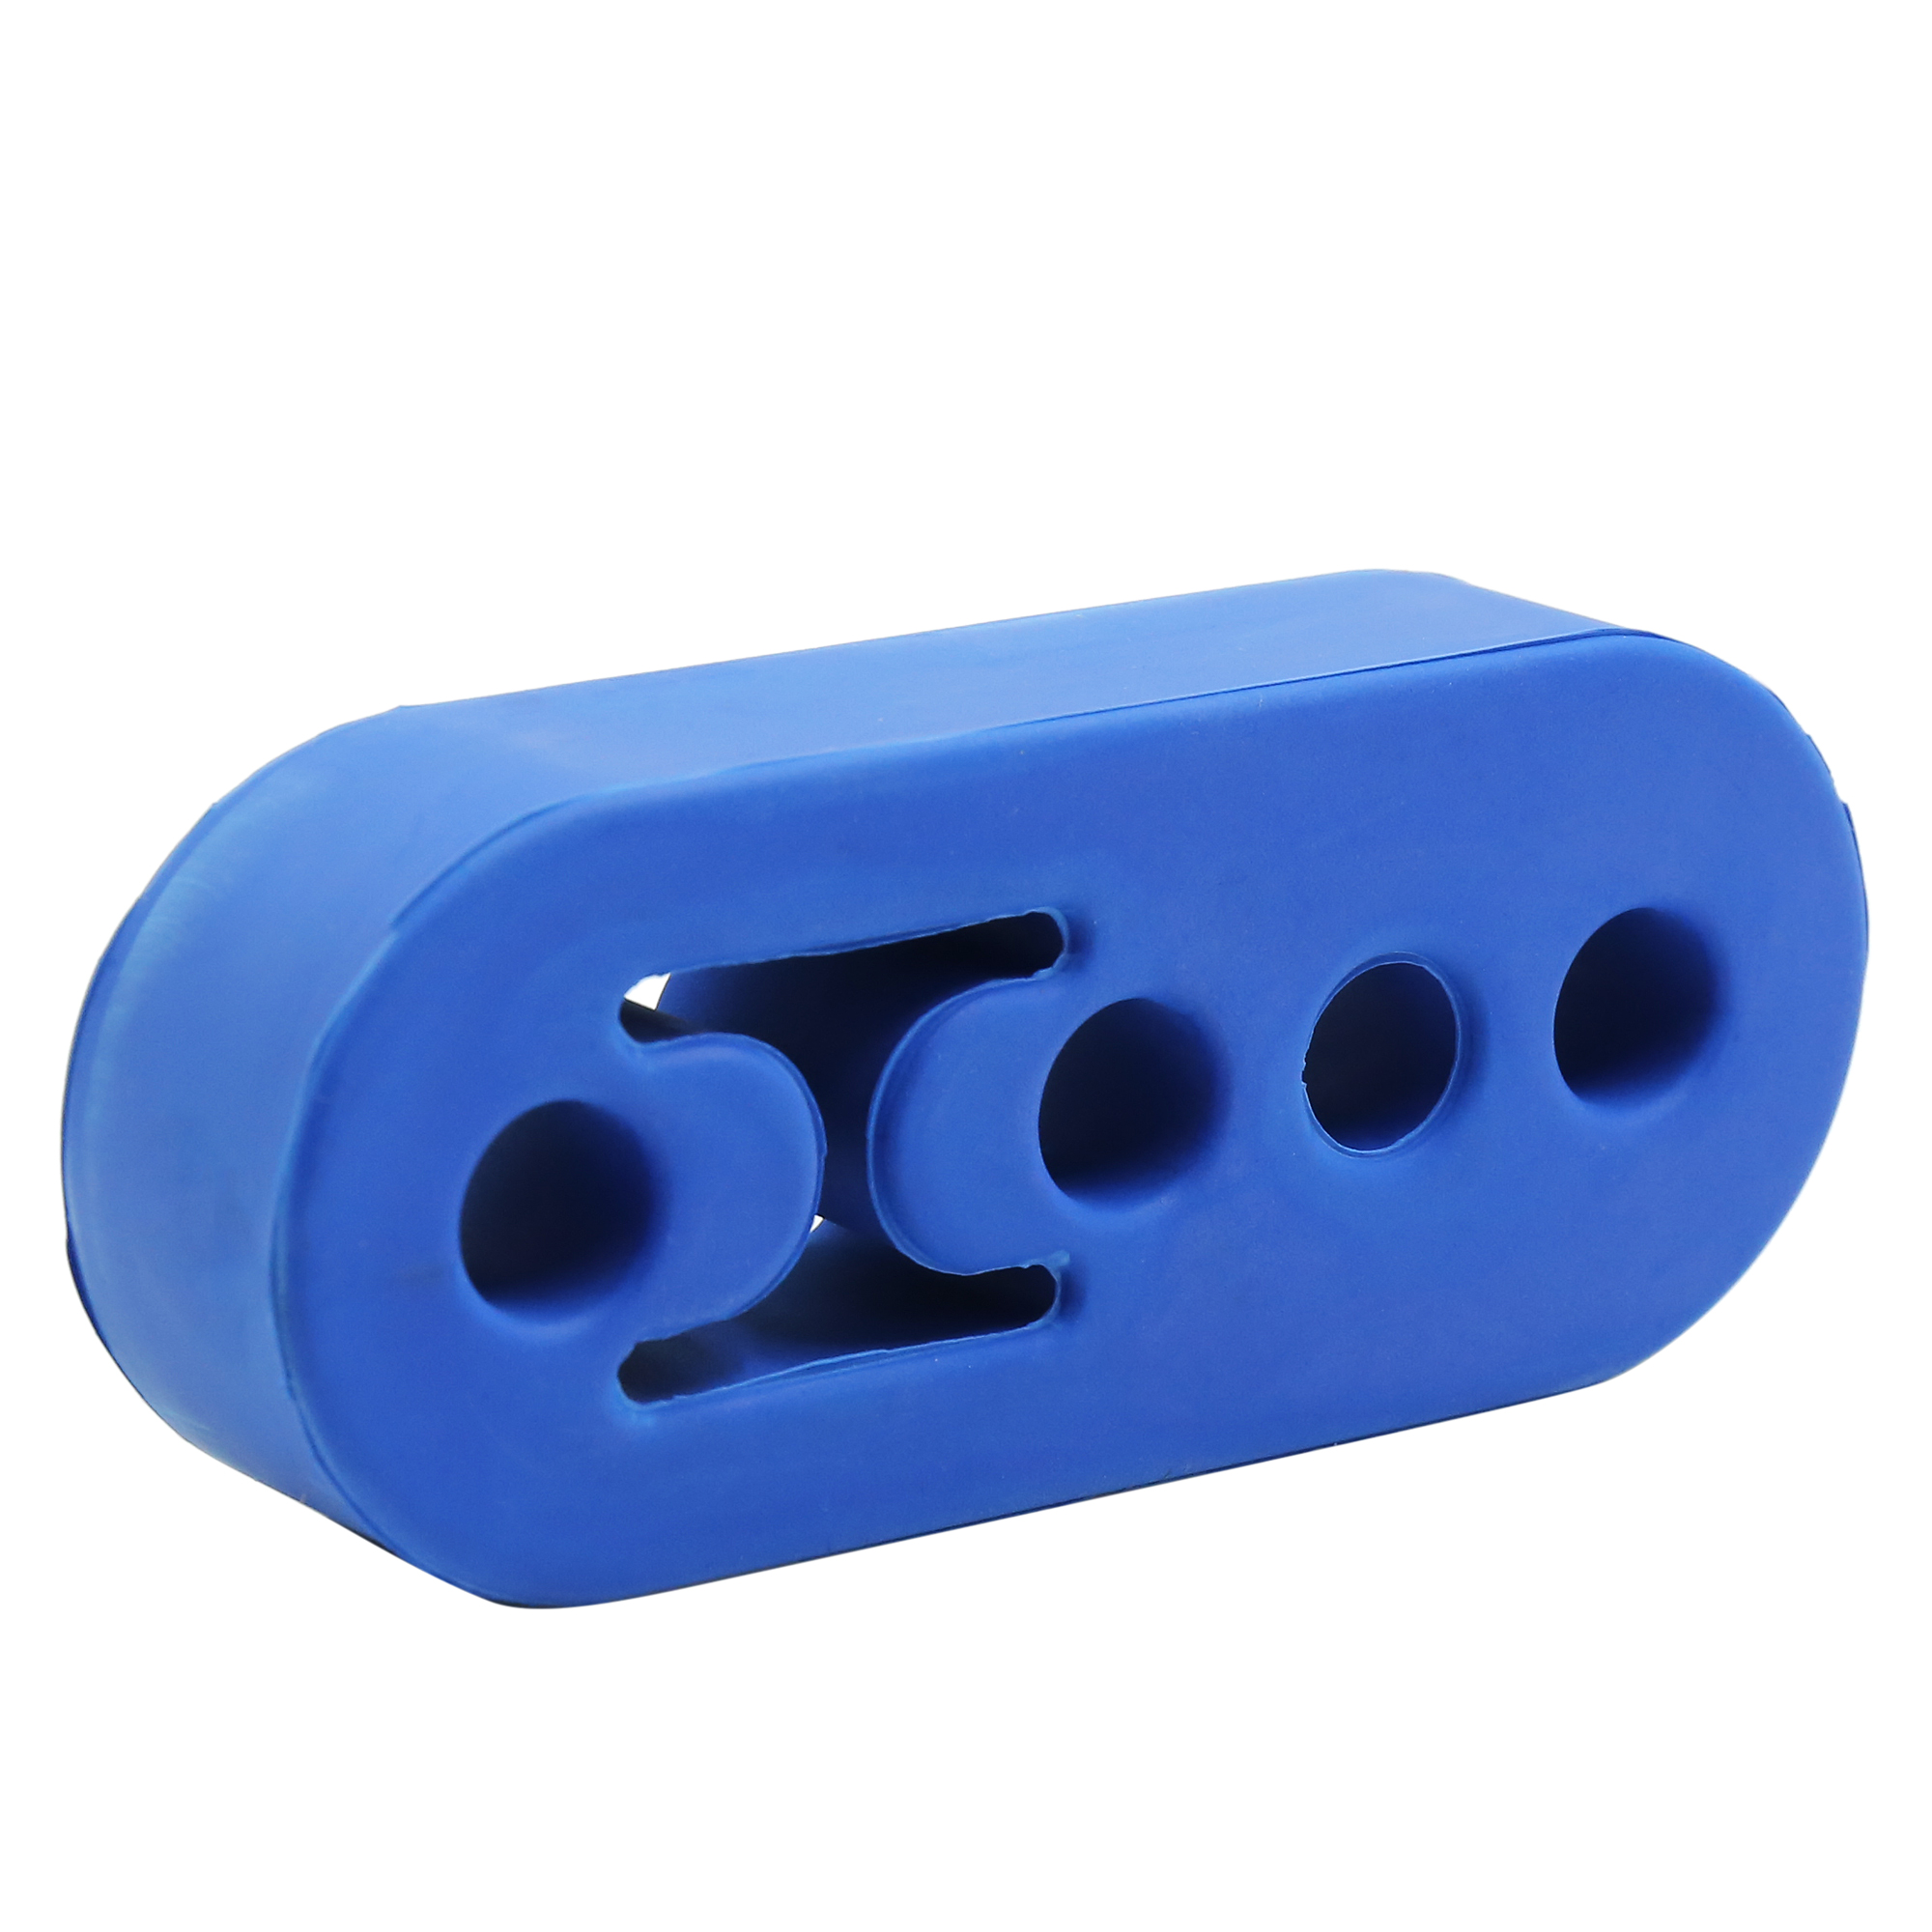 3pcs 4 Holes Blue Rubber Car Tail Pipe Brackets Exhaust Mounting Hanger - image 1 de 4